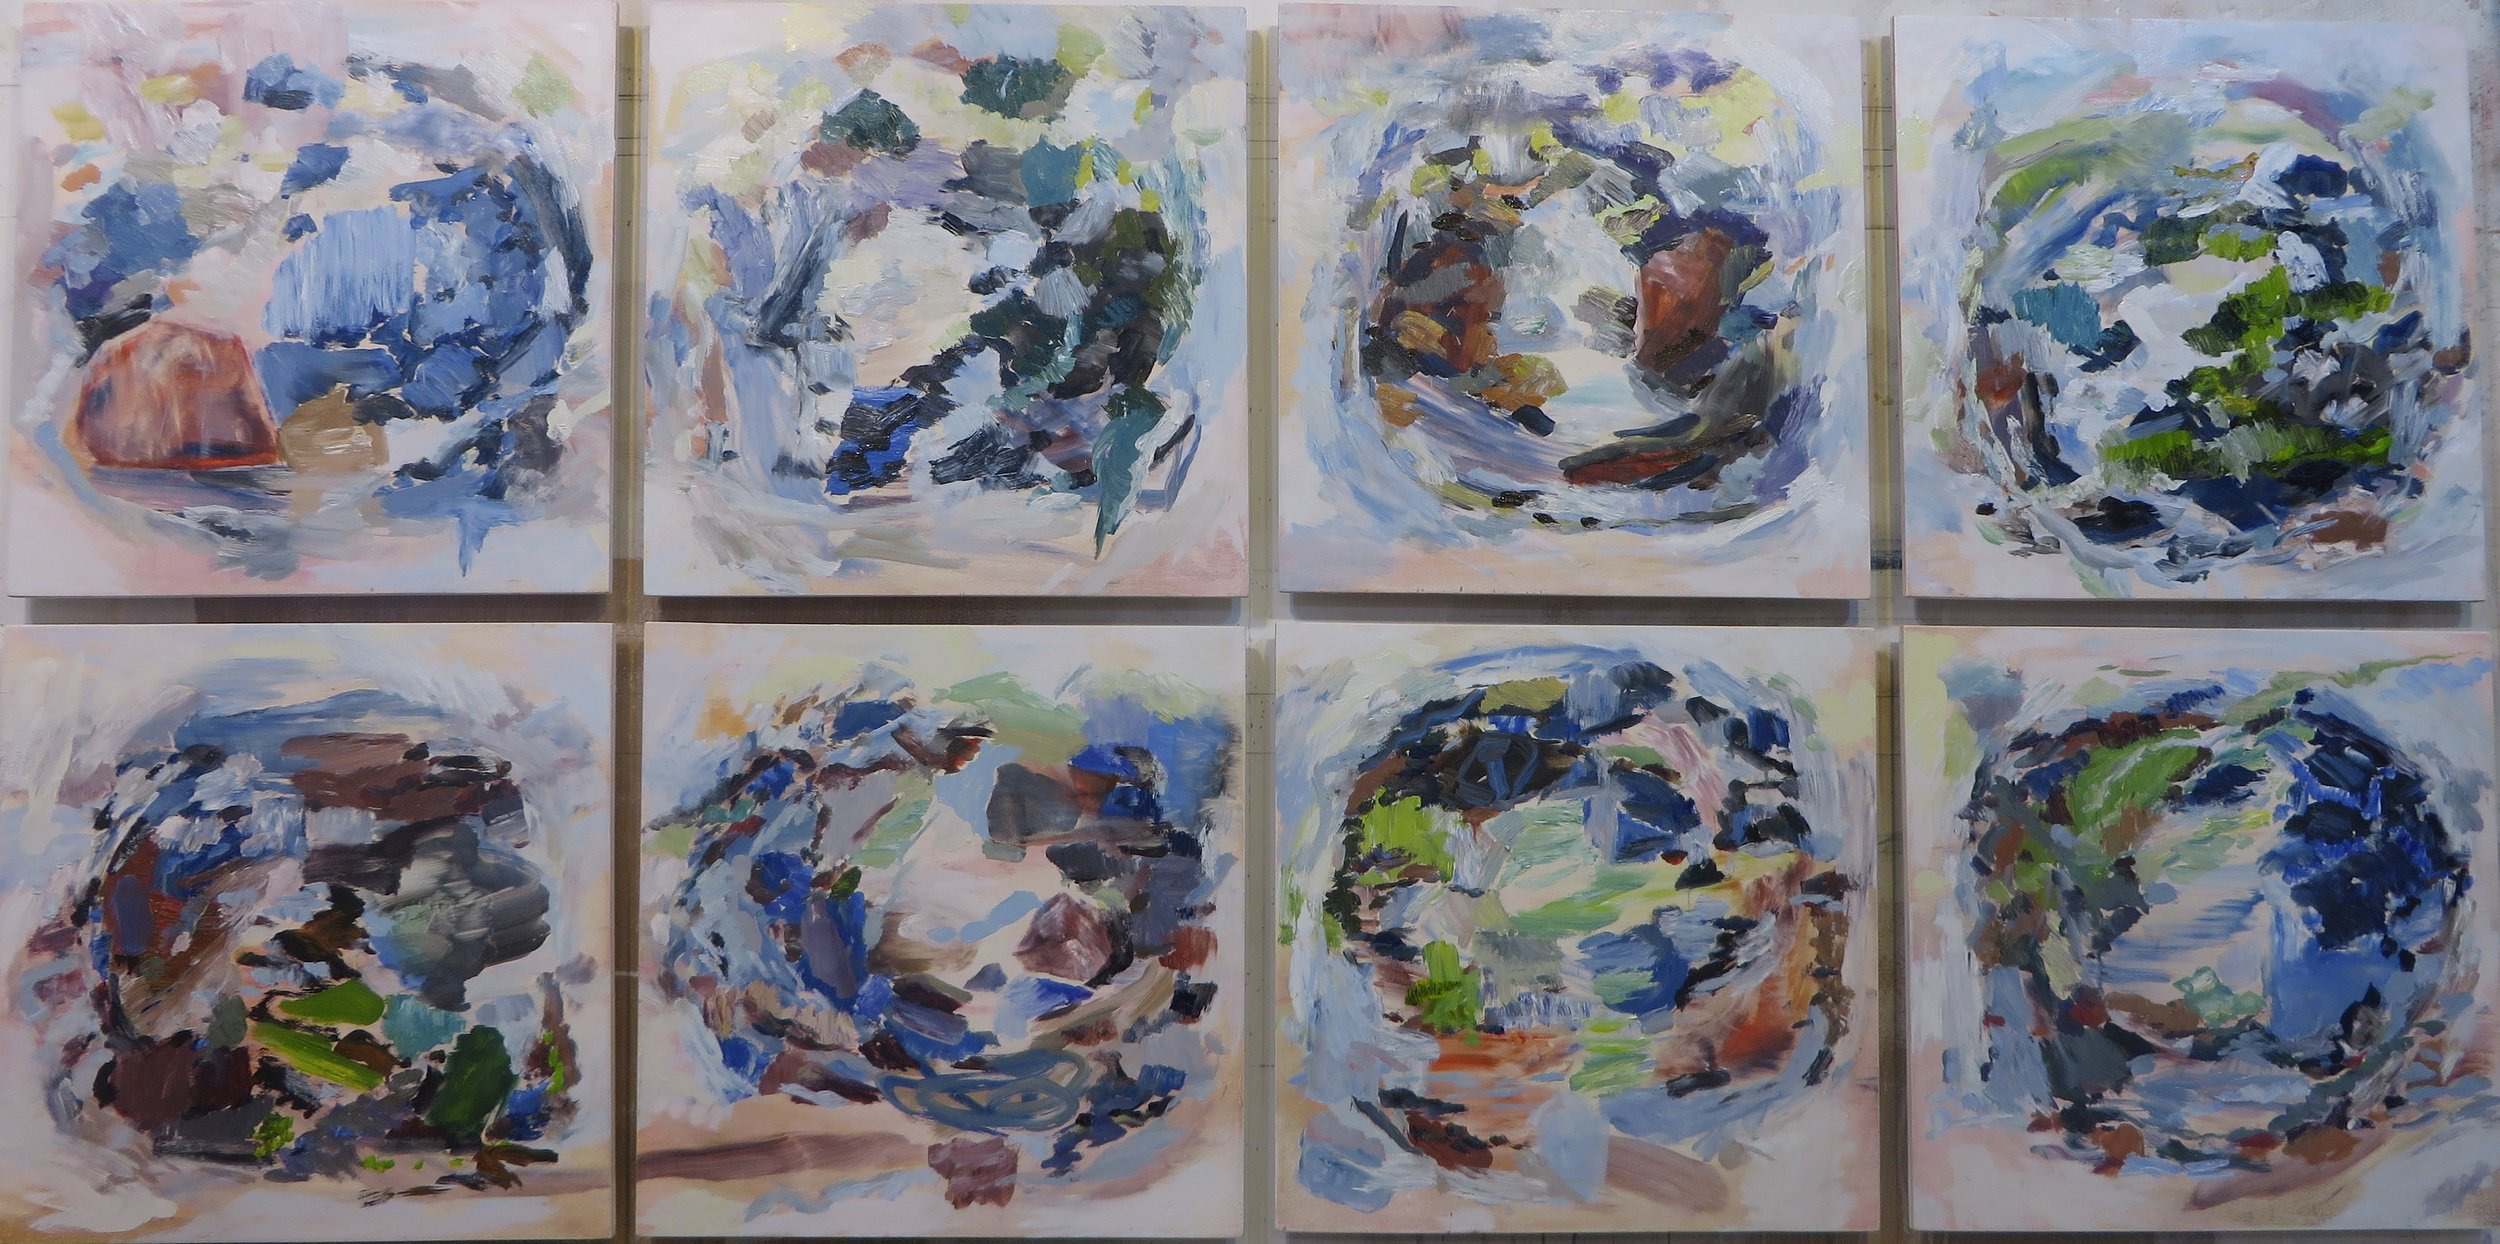 Copy of Earth Series 1 - 8, 2014